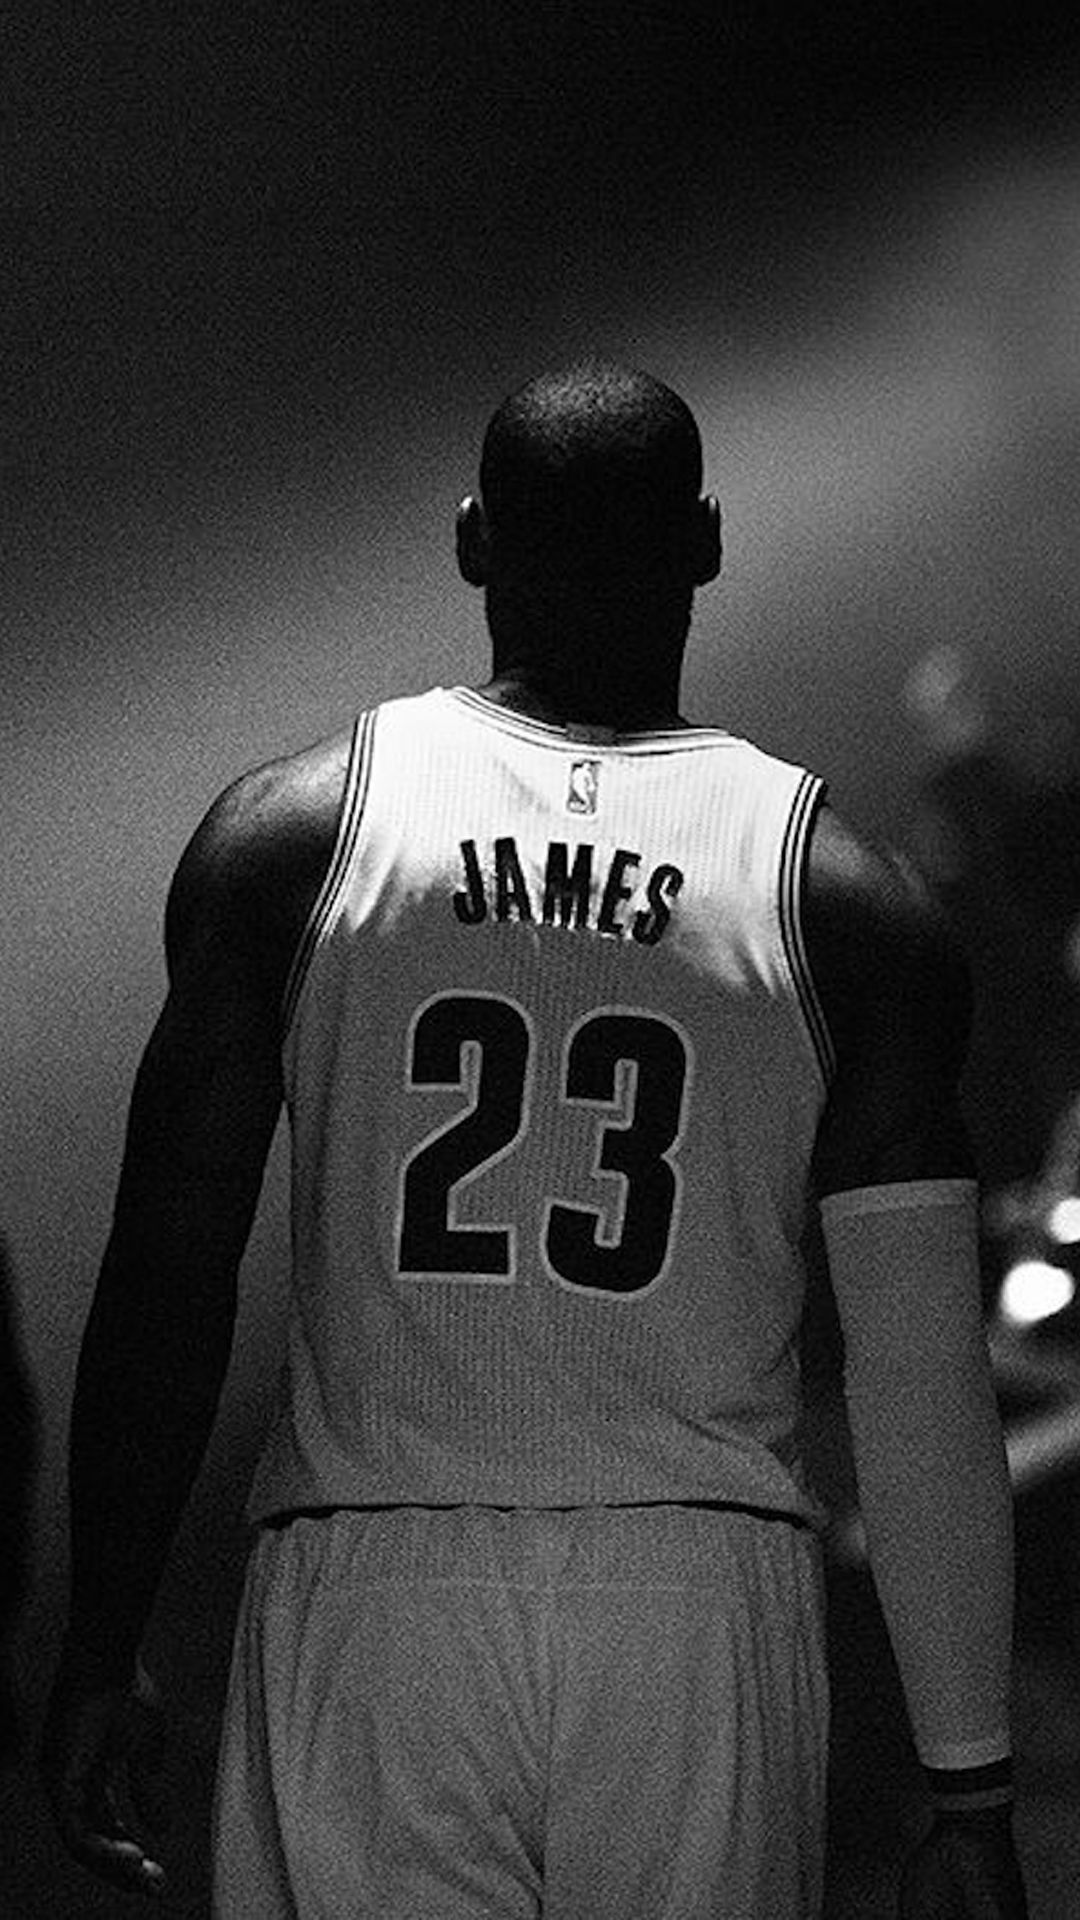 Lebron James Iphone Wallpapers Top Free Lebron James Iphone Backgrounds Wallpaperaccess